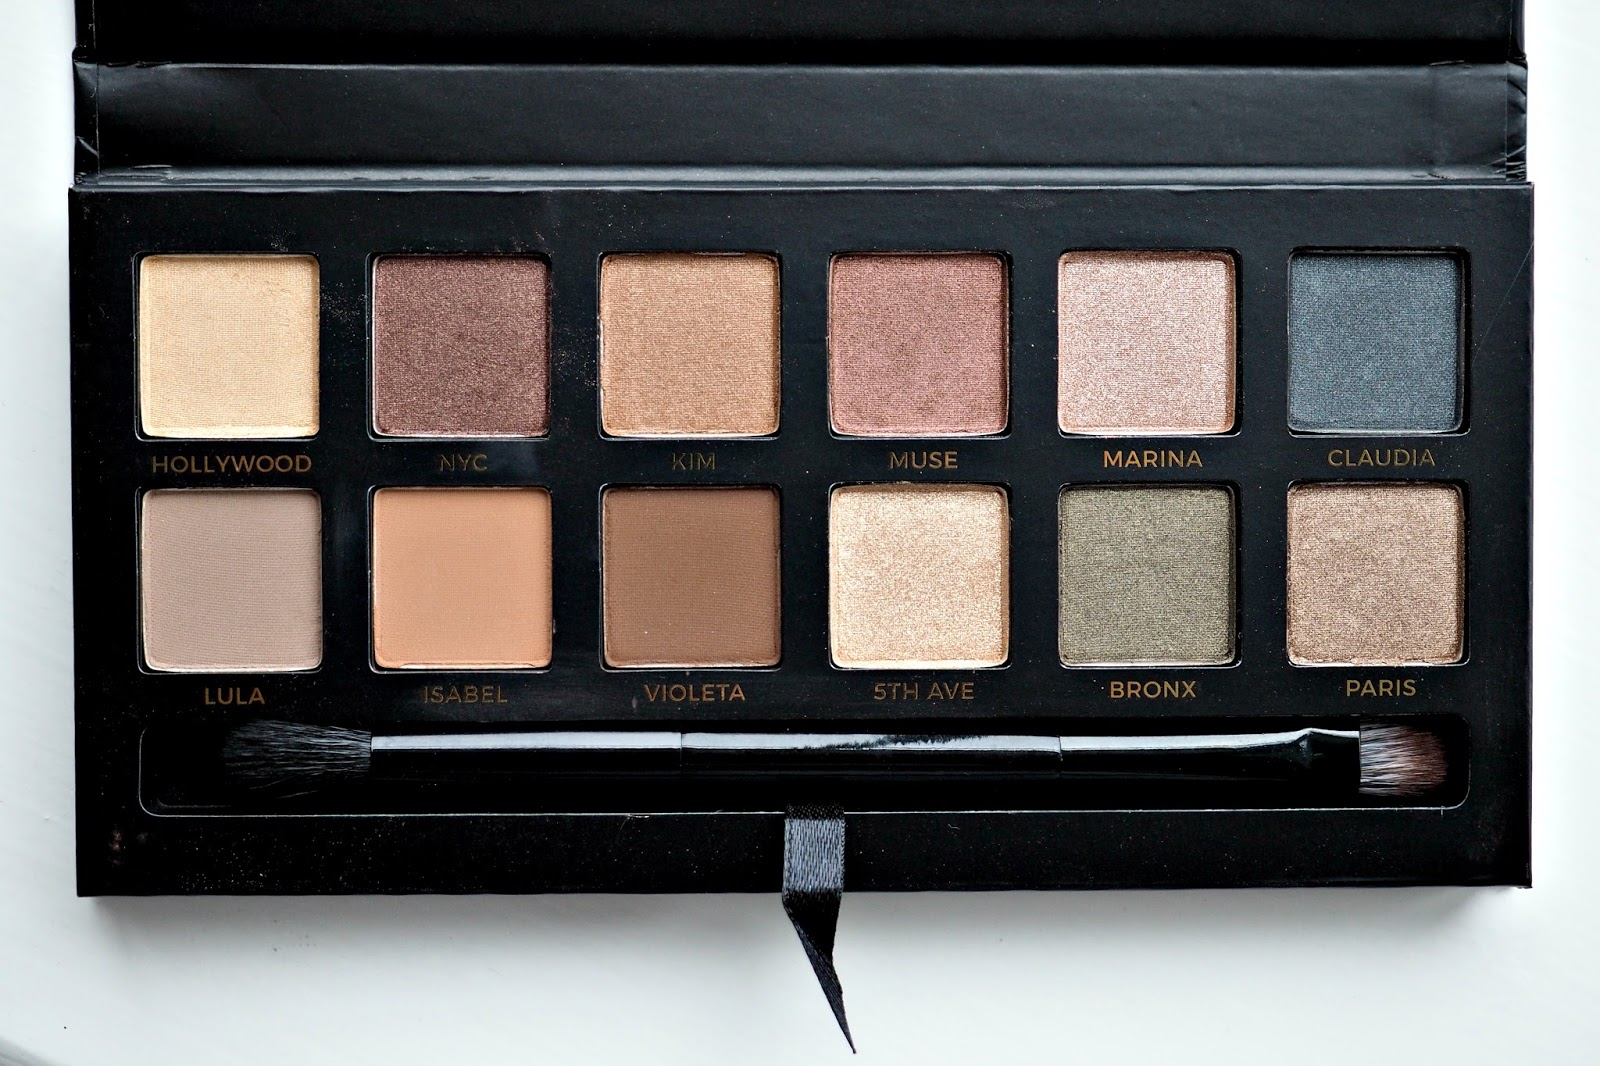 Anastasia Beverly Hills Master by Mario Palette Review & Swatches